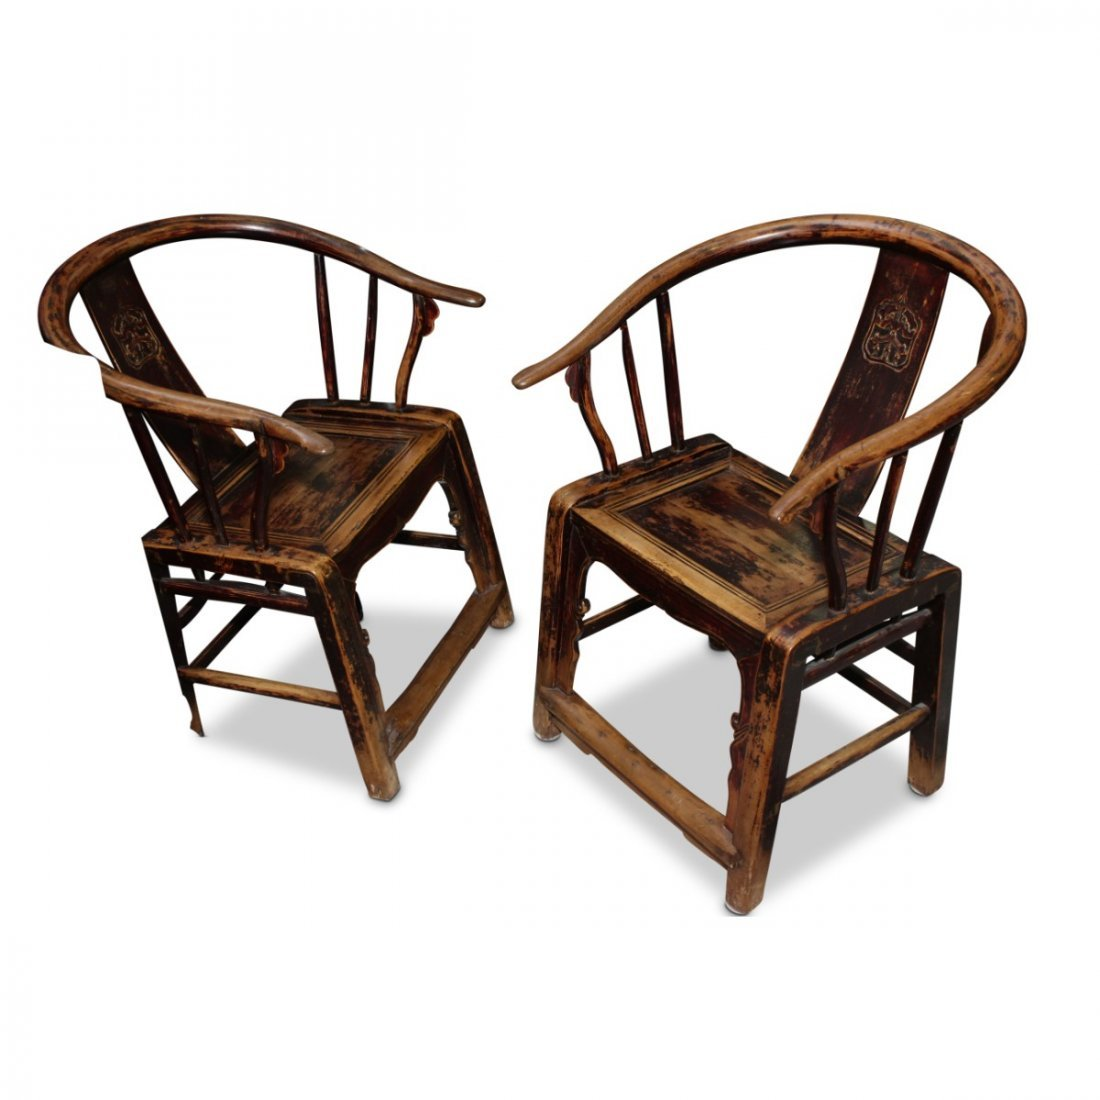 Pair of Chinese Horse Shoe Back Armchairs,